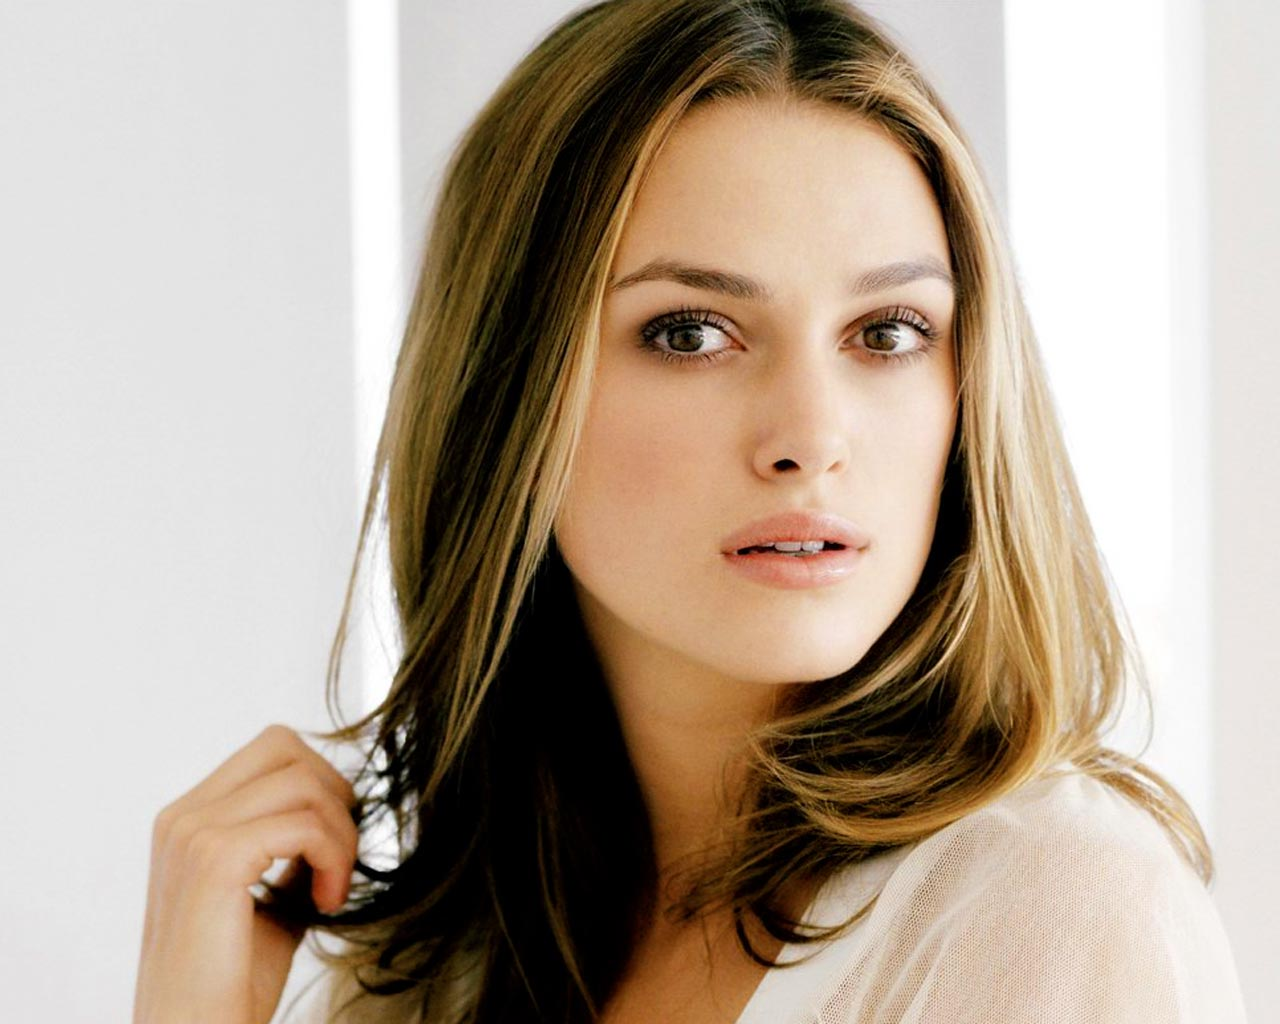 Ass Is a cute Keira Knightley naked photo 2017